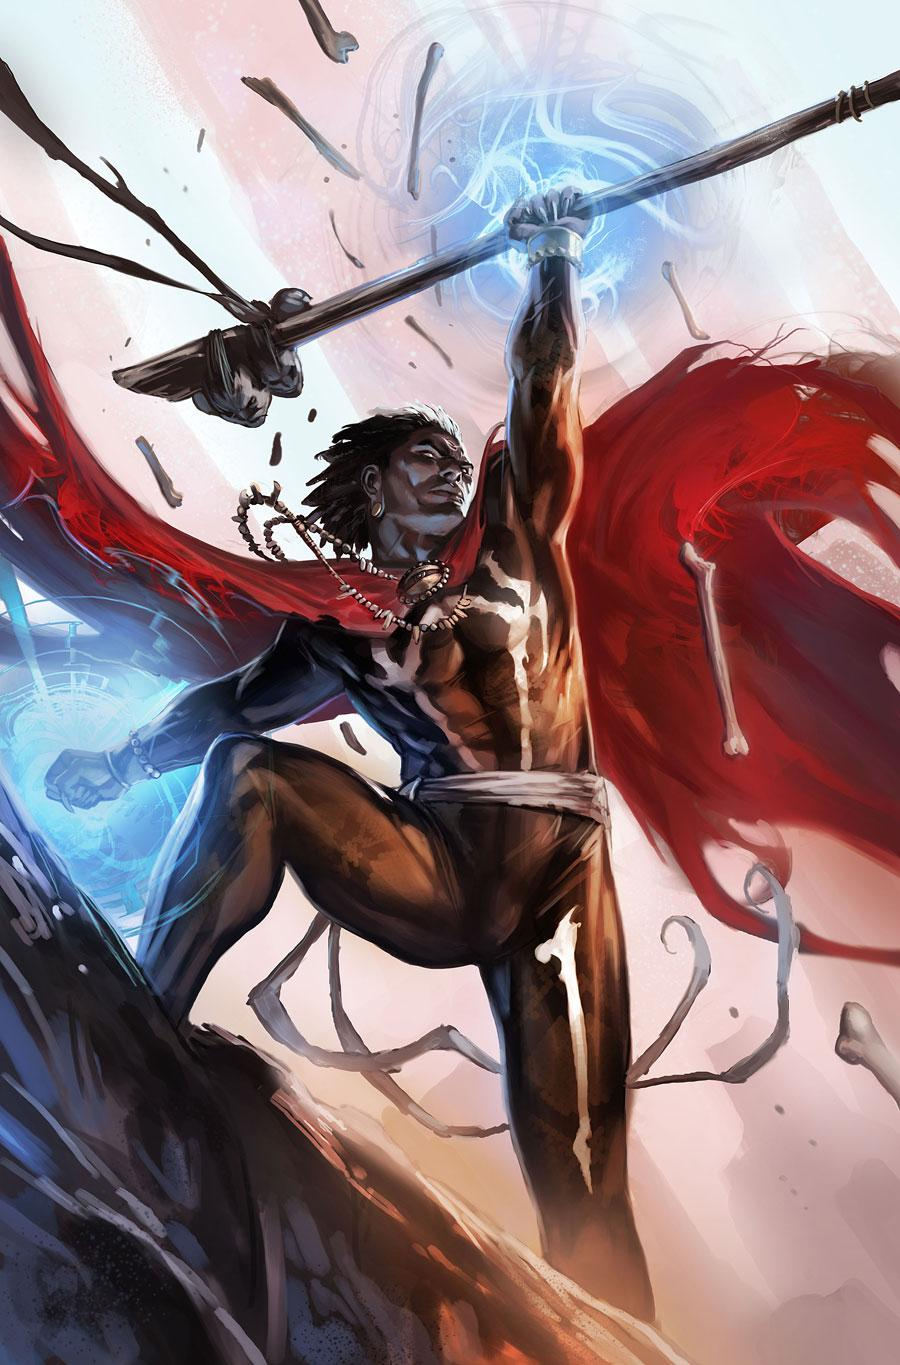 Doctor Voodoo is the current Sorcerer Supreme and it never made since how the Sorcerer Supreme was never on an Avengers team for so many years and then Strange was put on for such a short time lets try that again with the New Sorcerer Supreme and make him worth the title